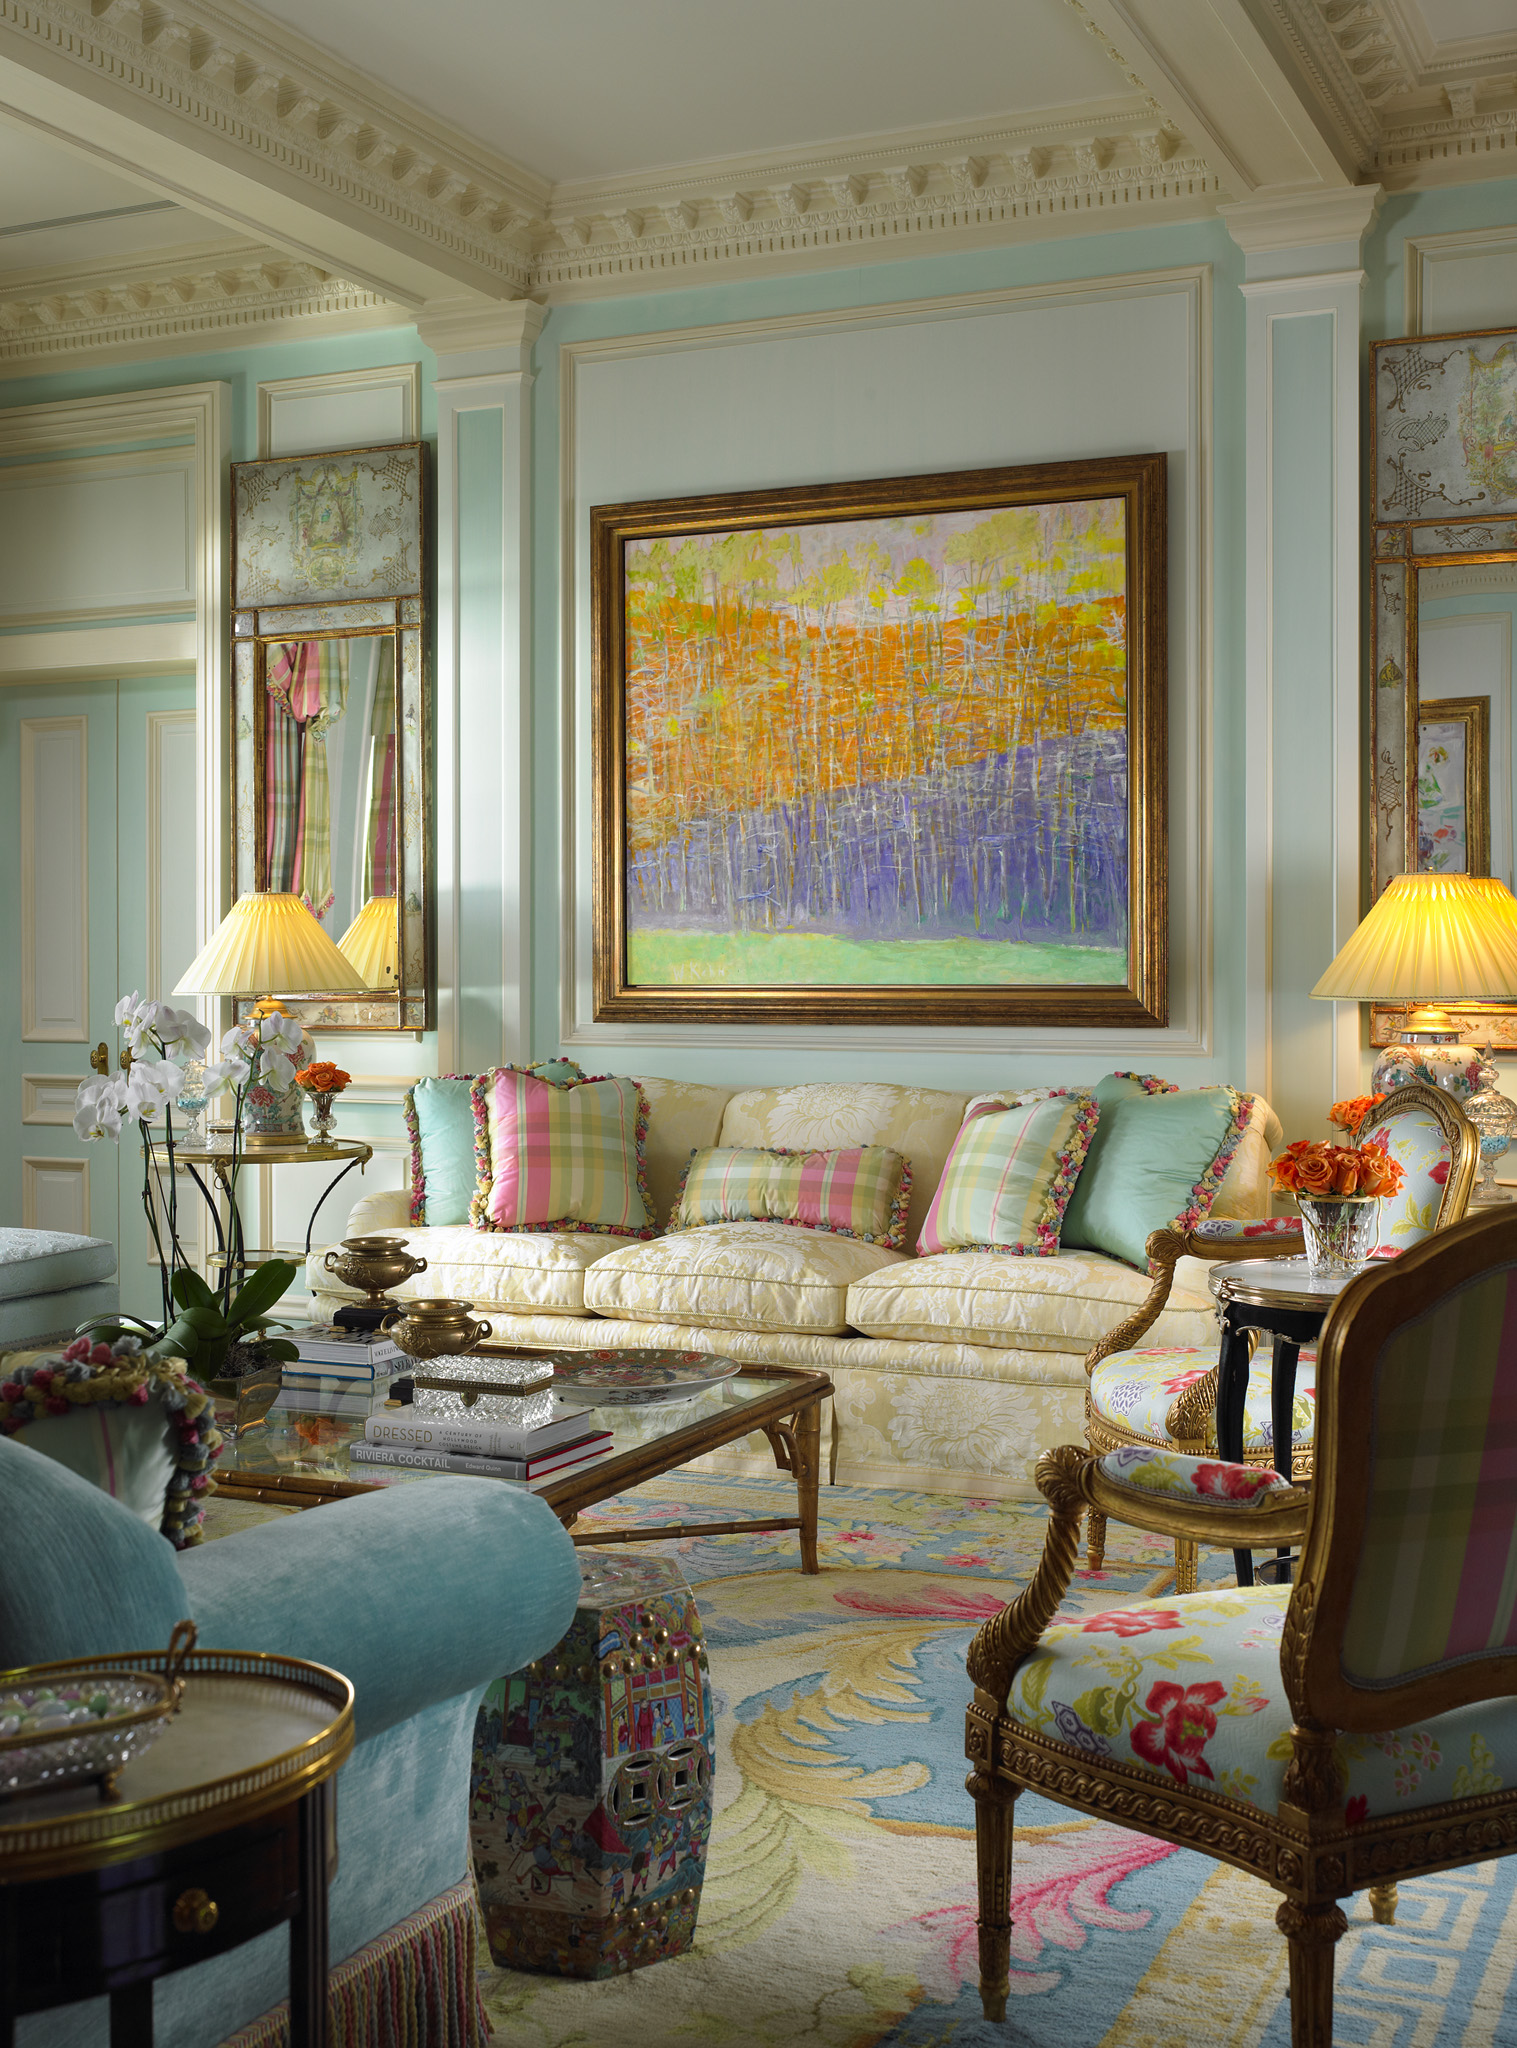 English Style Interior Design Palm Beach English Country Interior By LONG H